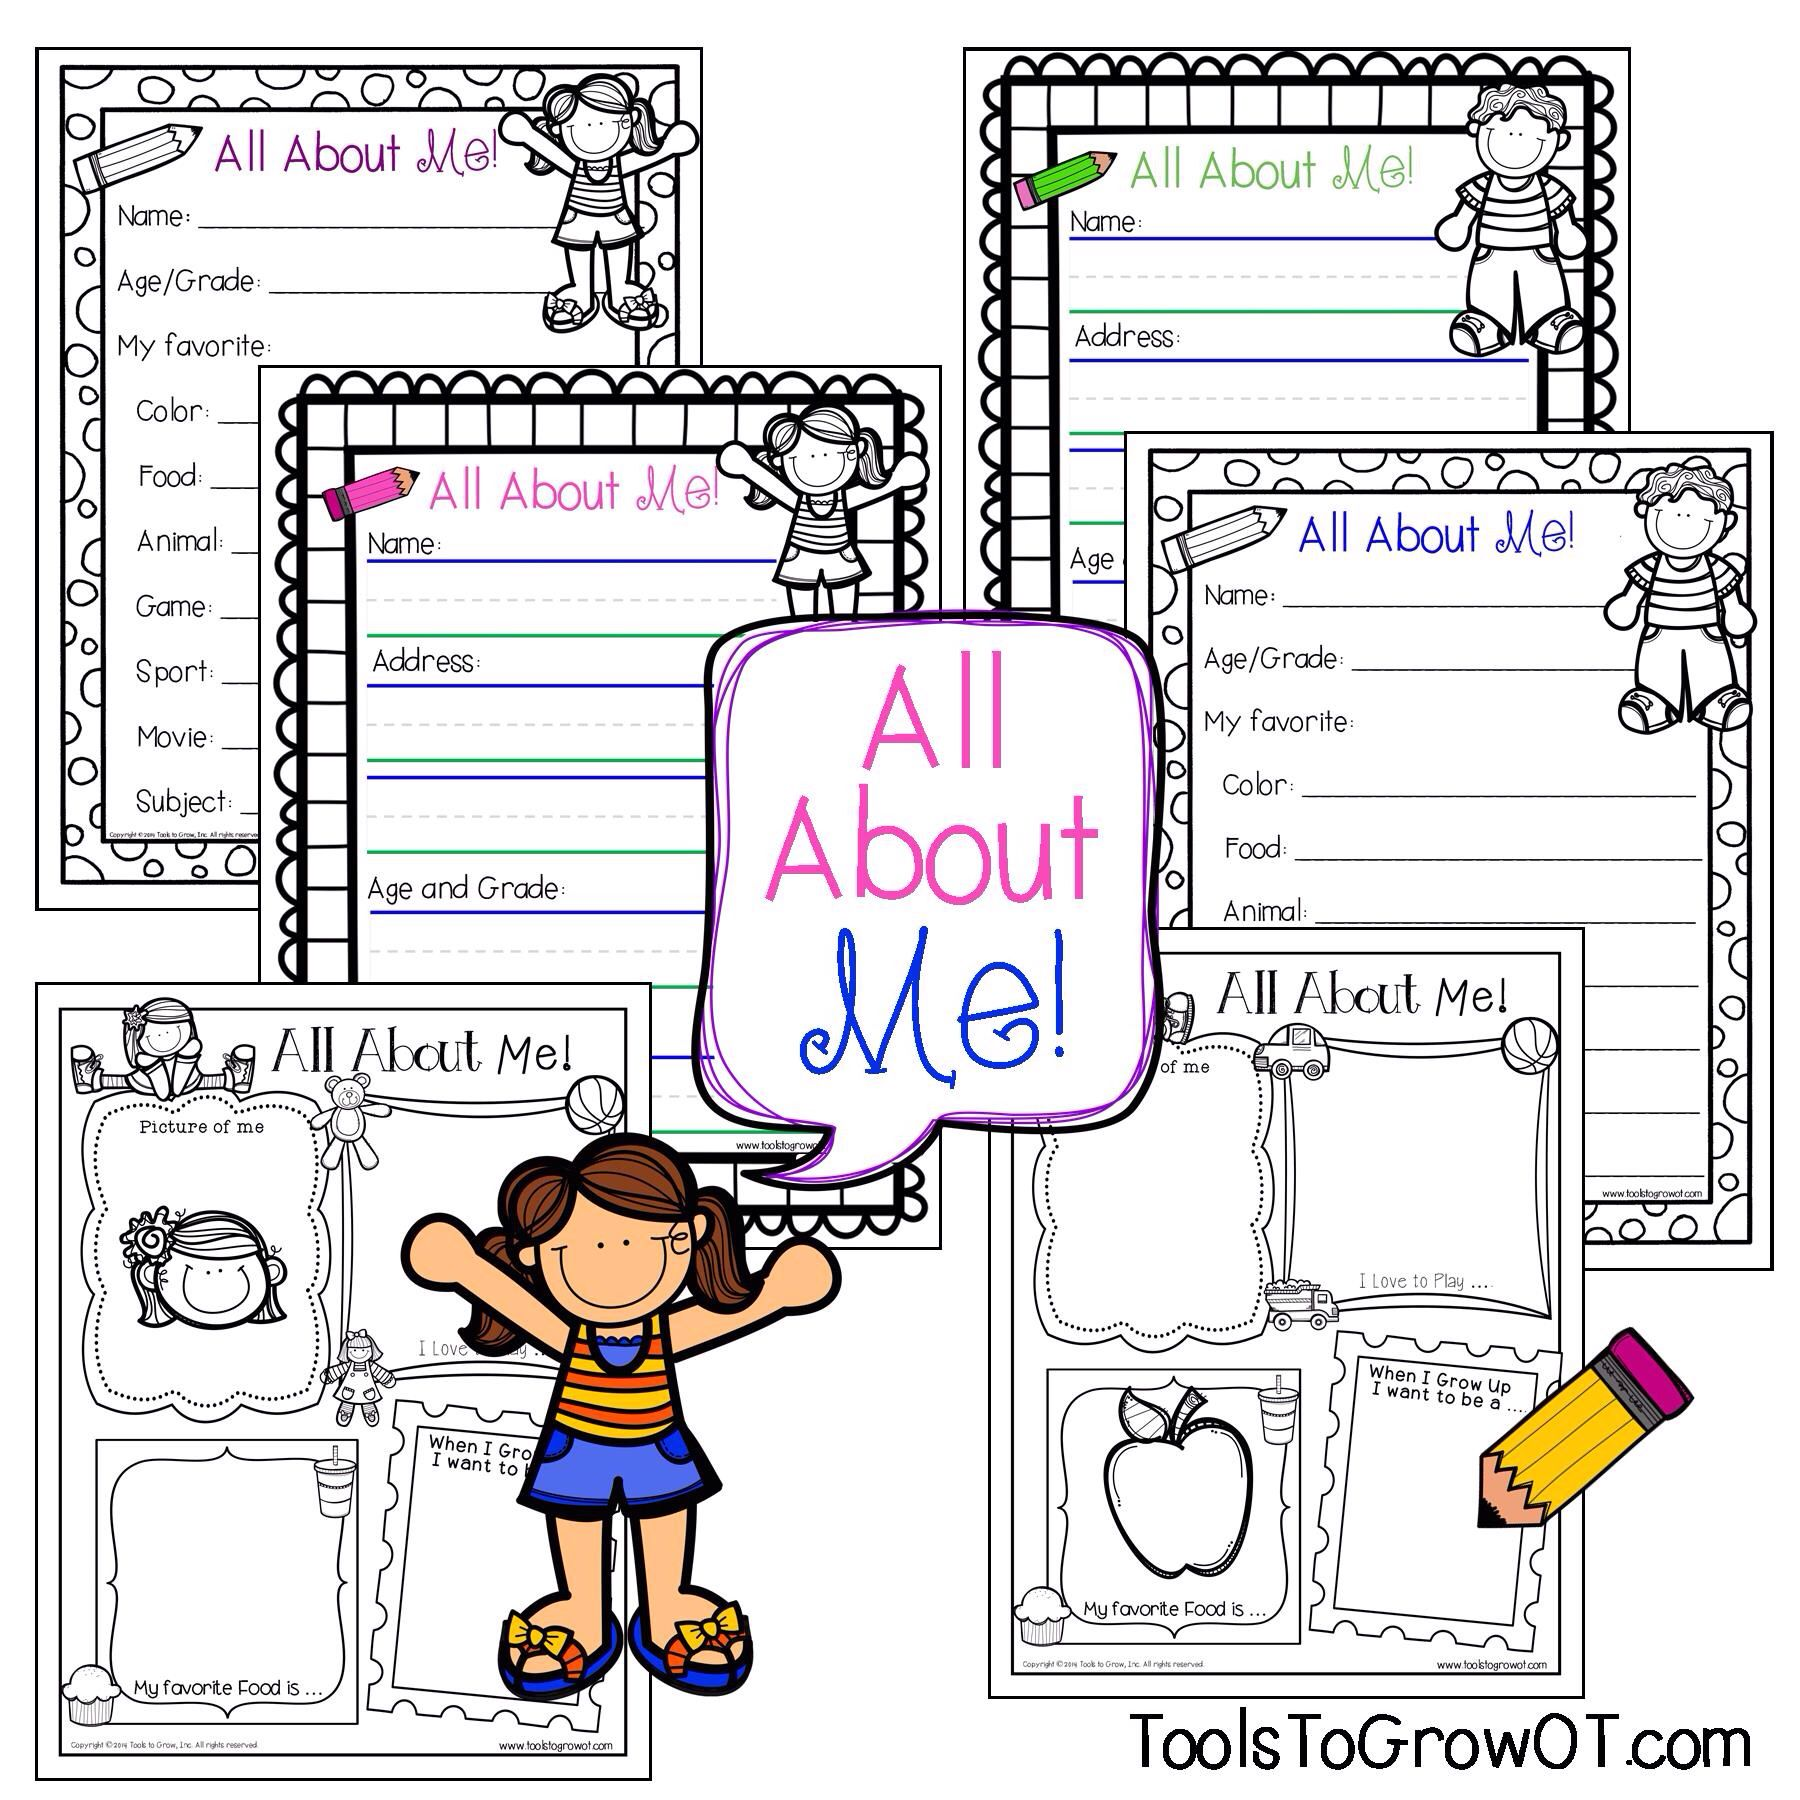 All About Me Writing And Colouring Resources